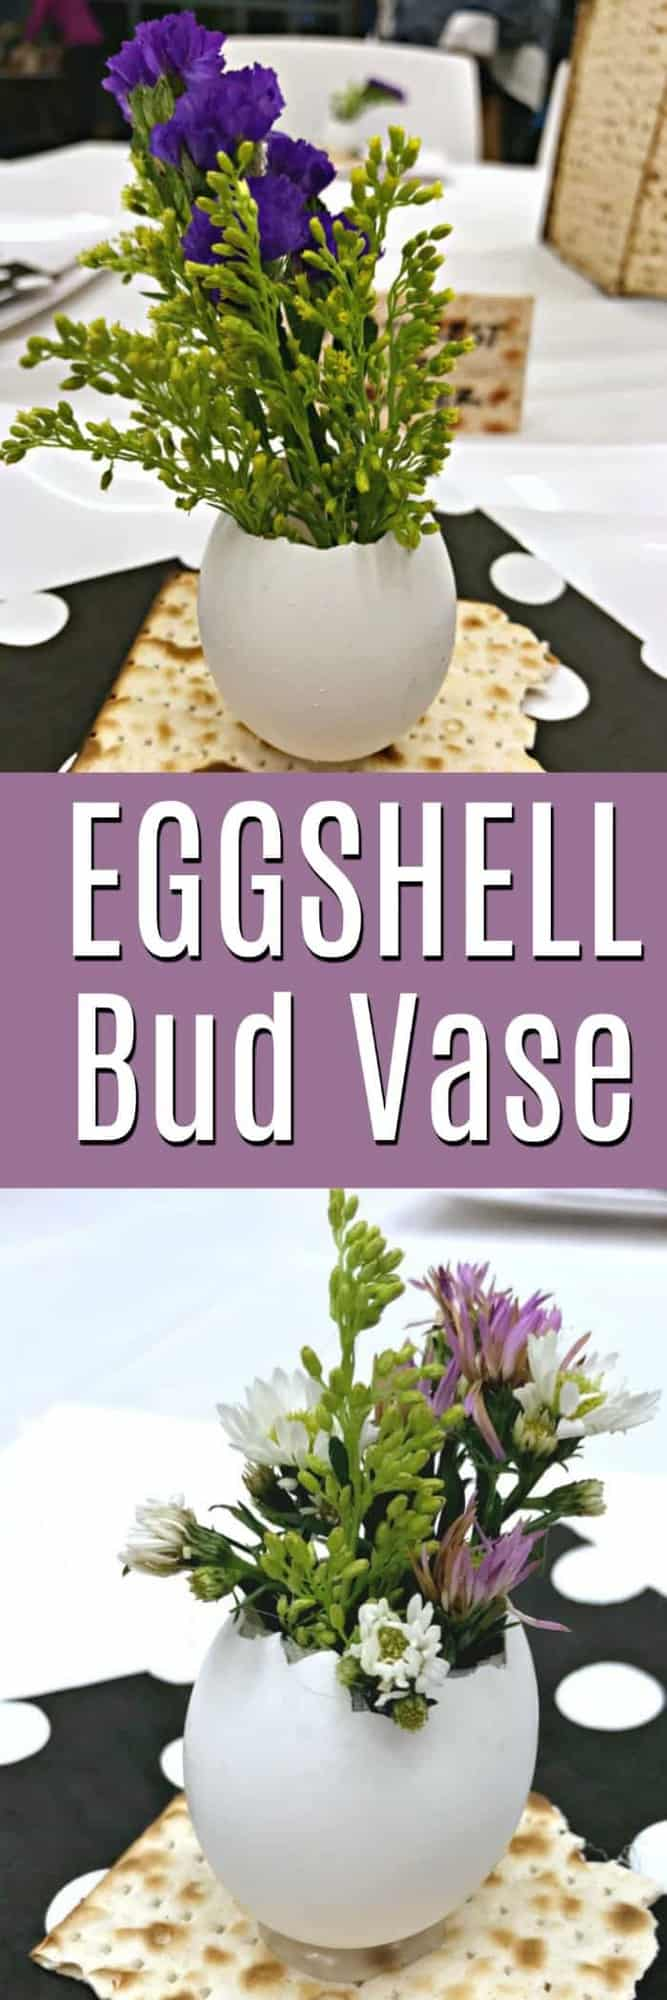 How to make an Eggshell Bud Vase